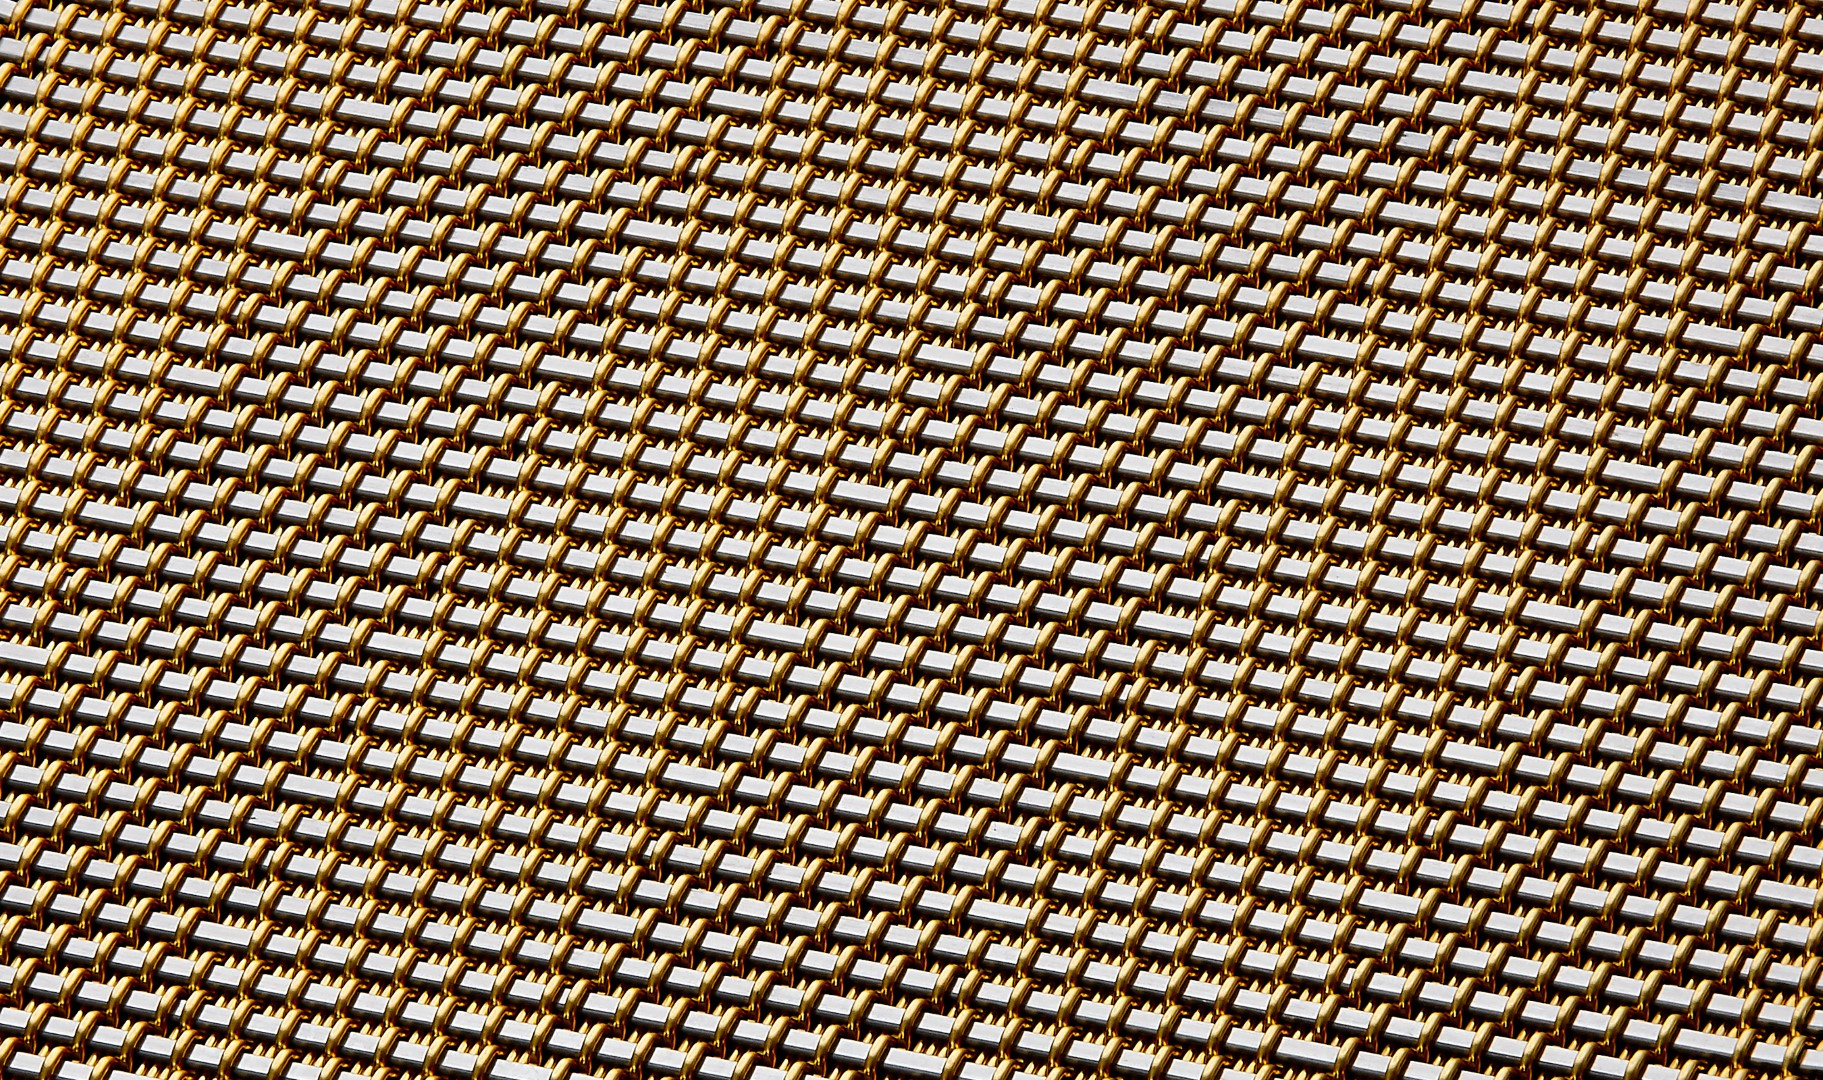 Backside of DT-1 Opaque architectural cladding mesh pattern woven in Stainless and Brass